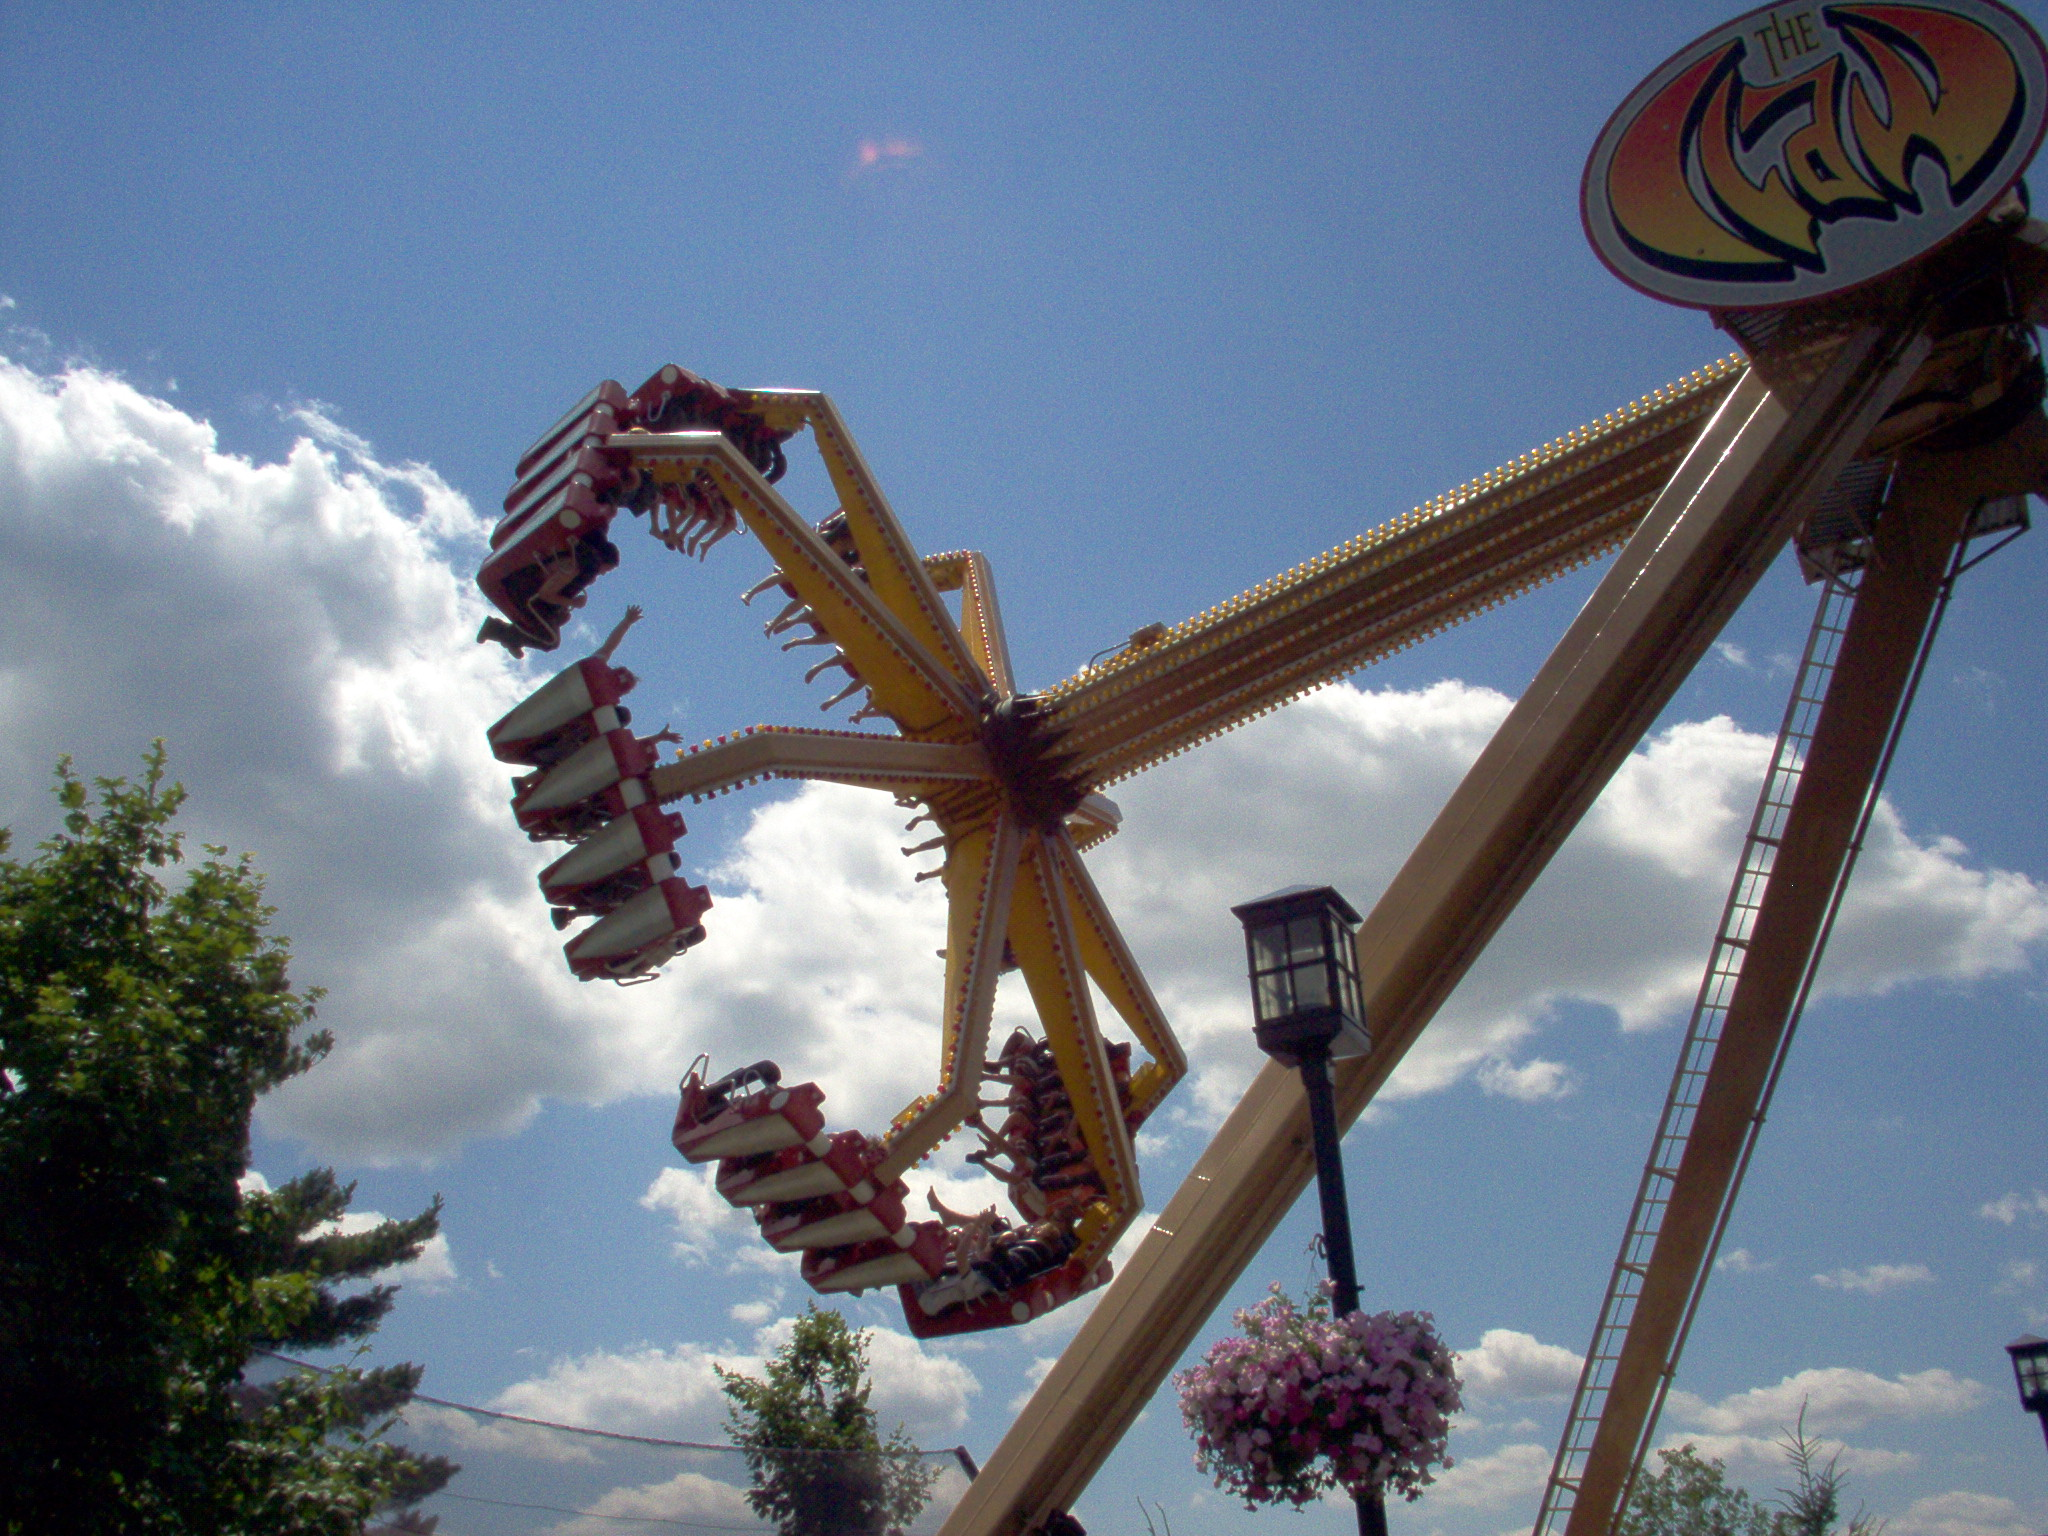 Hersheypark s The Claw ride in motion